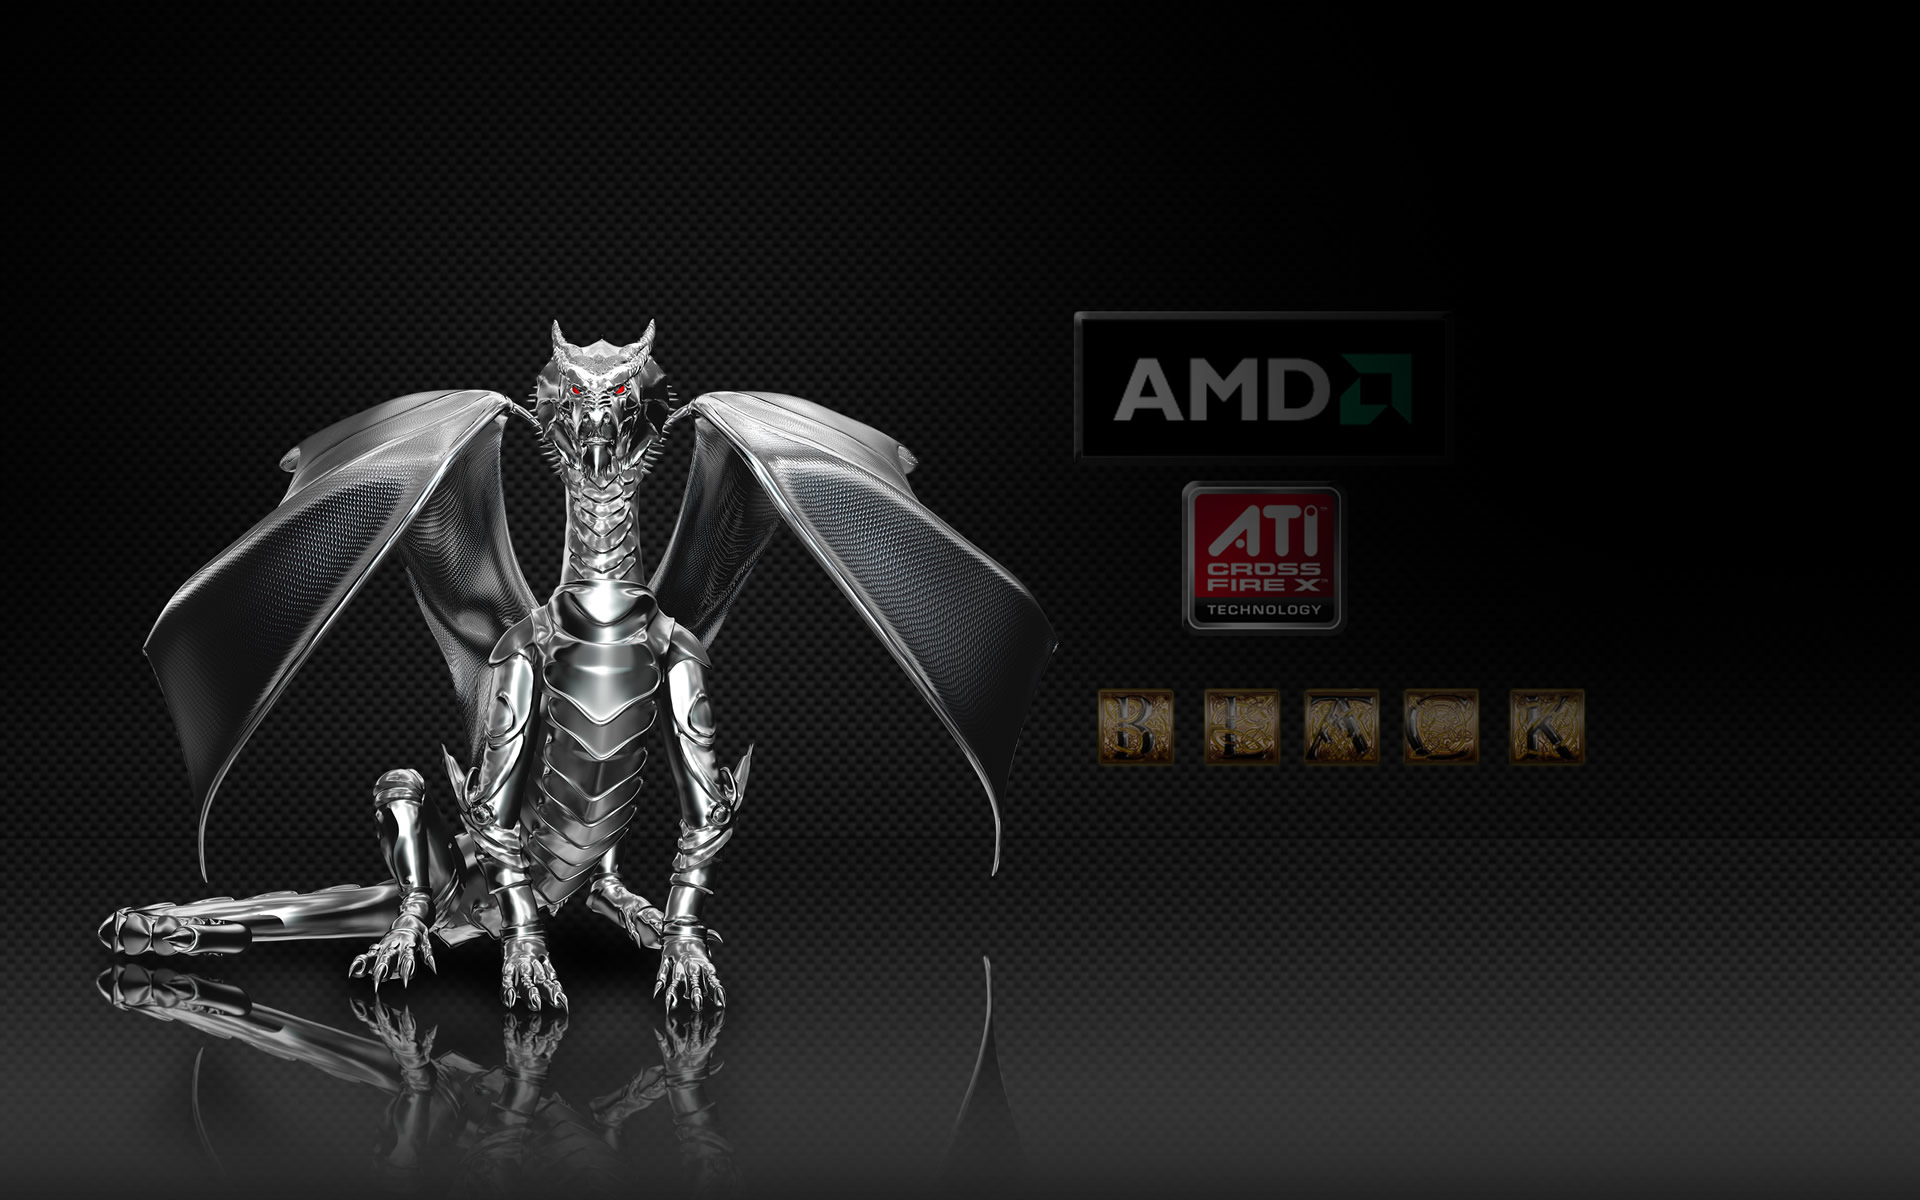 amd wallpapers 15 - [1920 x 1200]